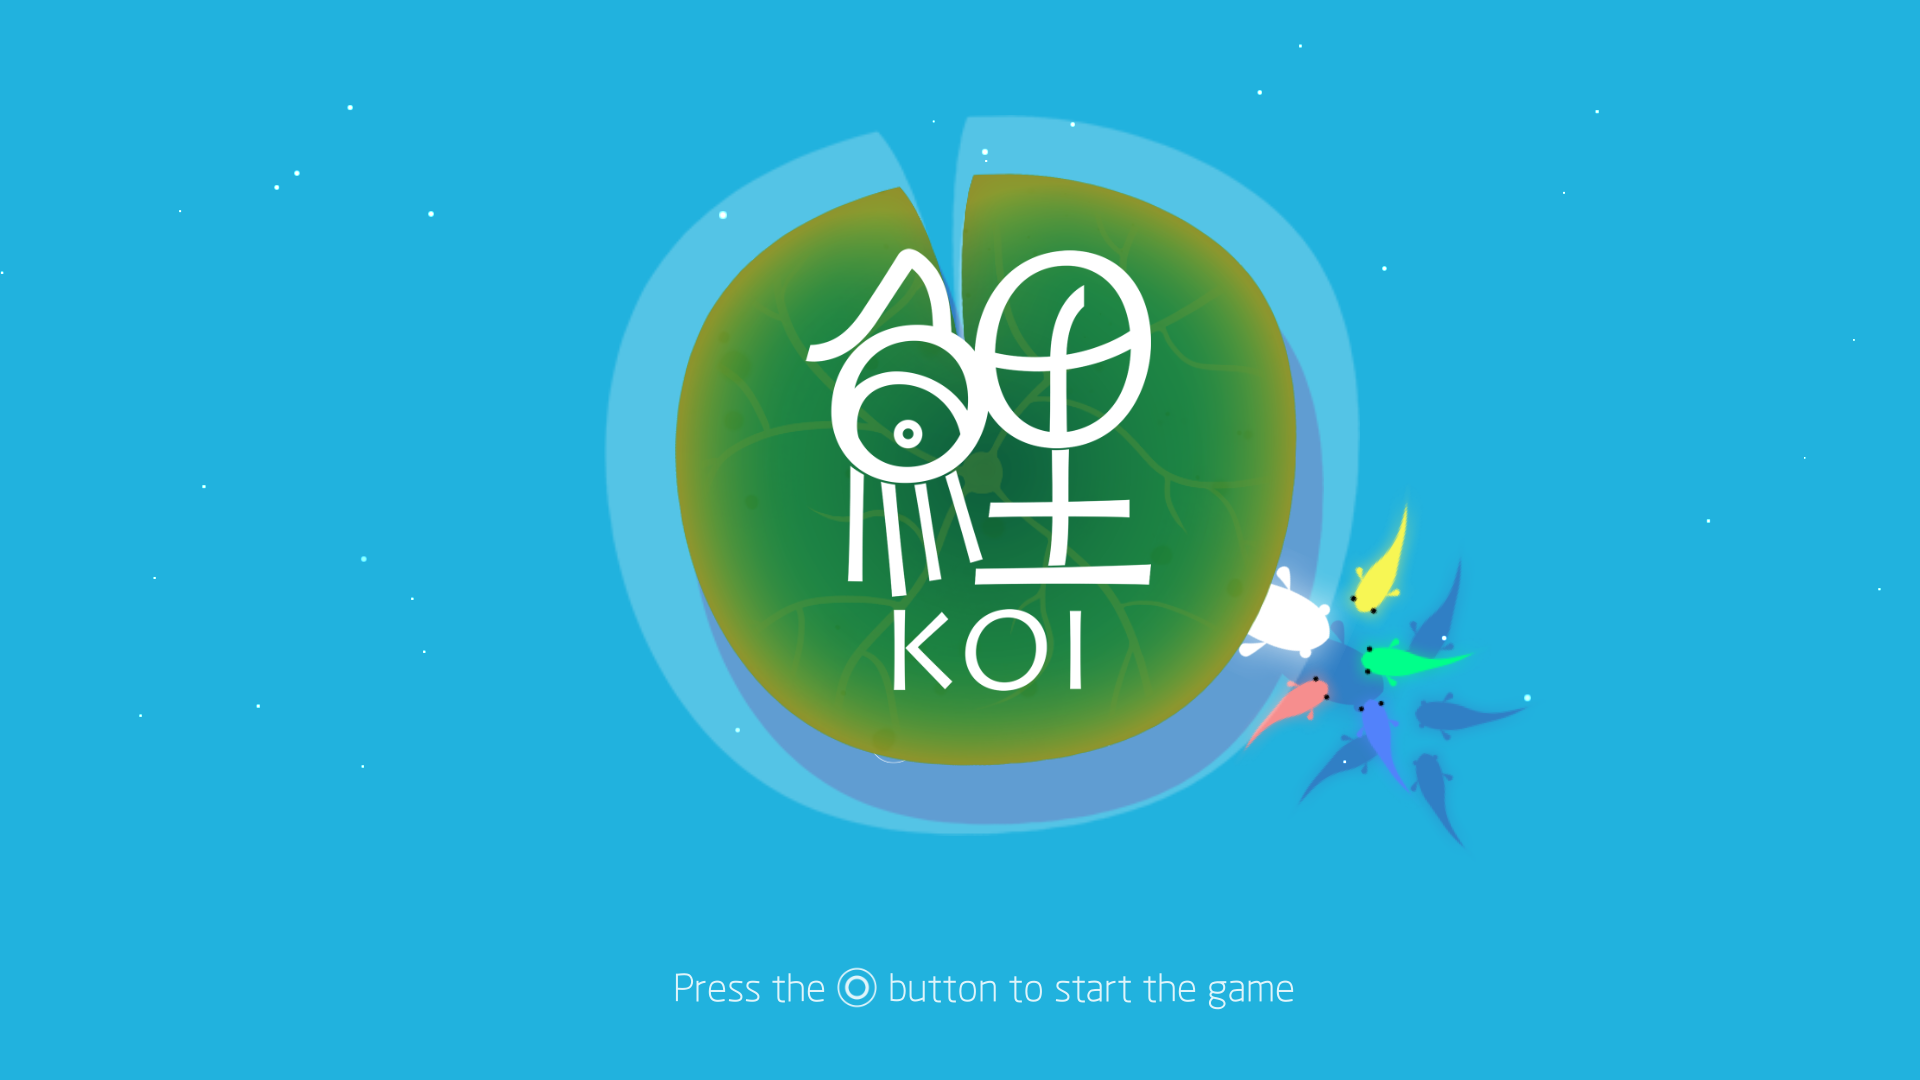 koi-review-01